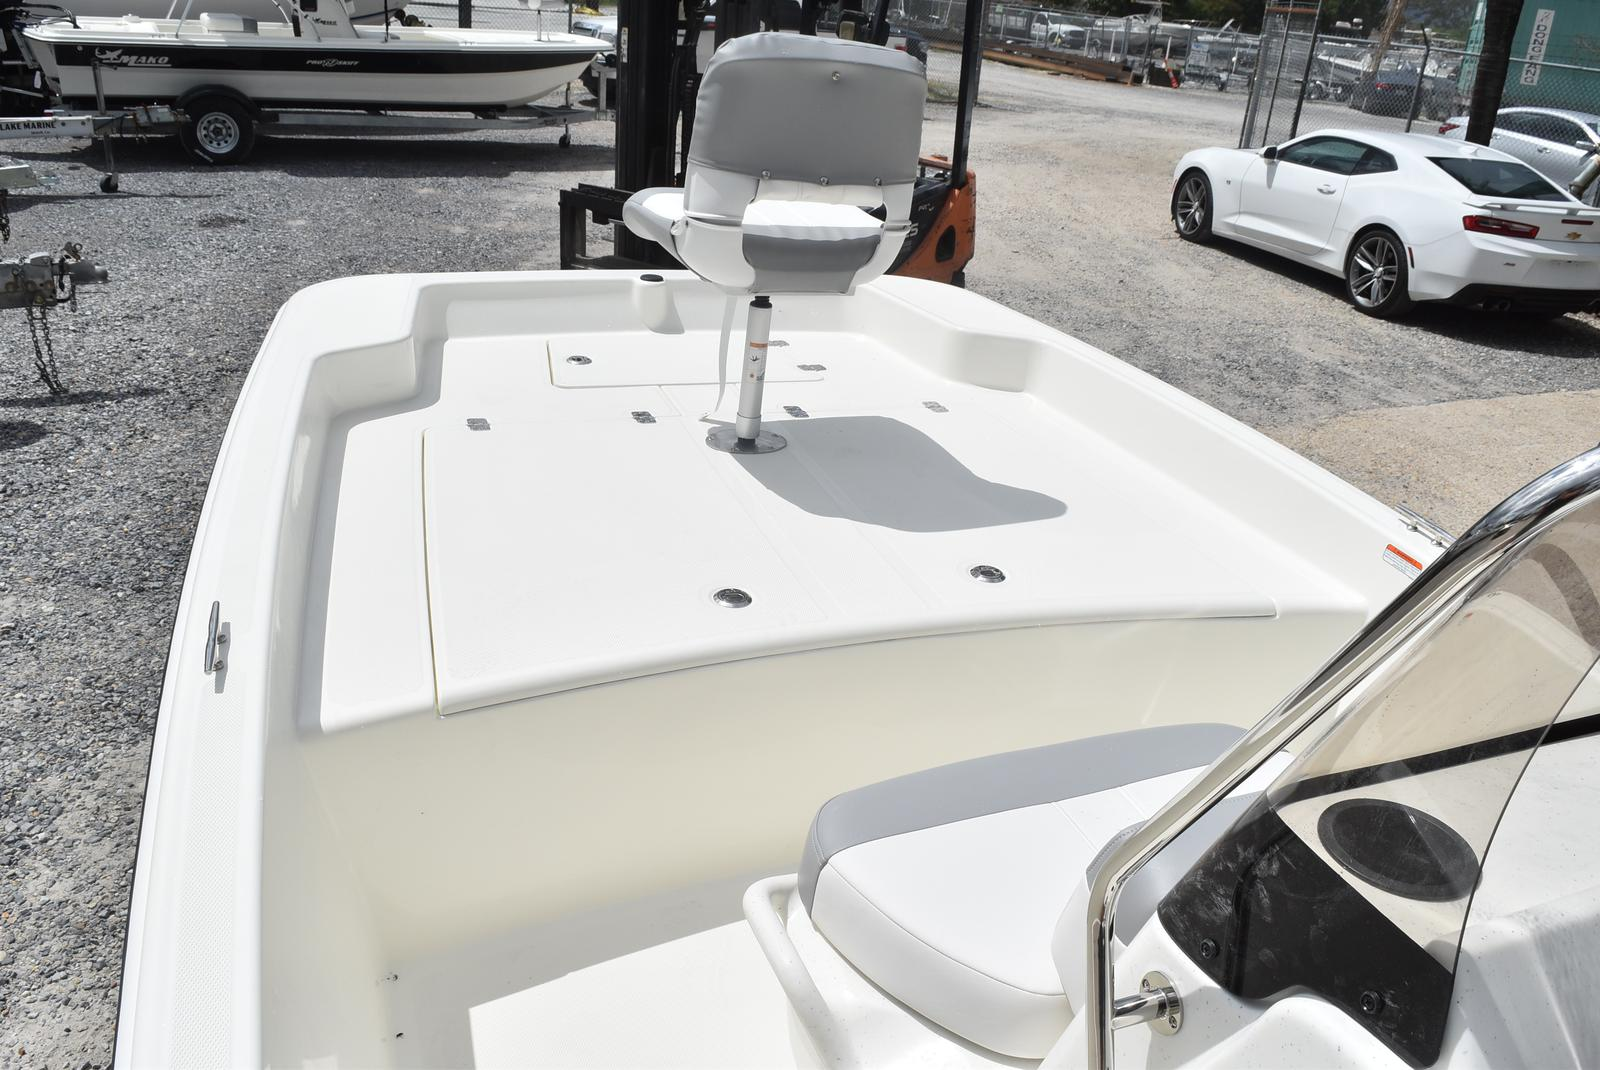 2020 Mako boat for sale, model of the boat is Pro Skiff 17, 75 ELPT & Image # 453 of 702